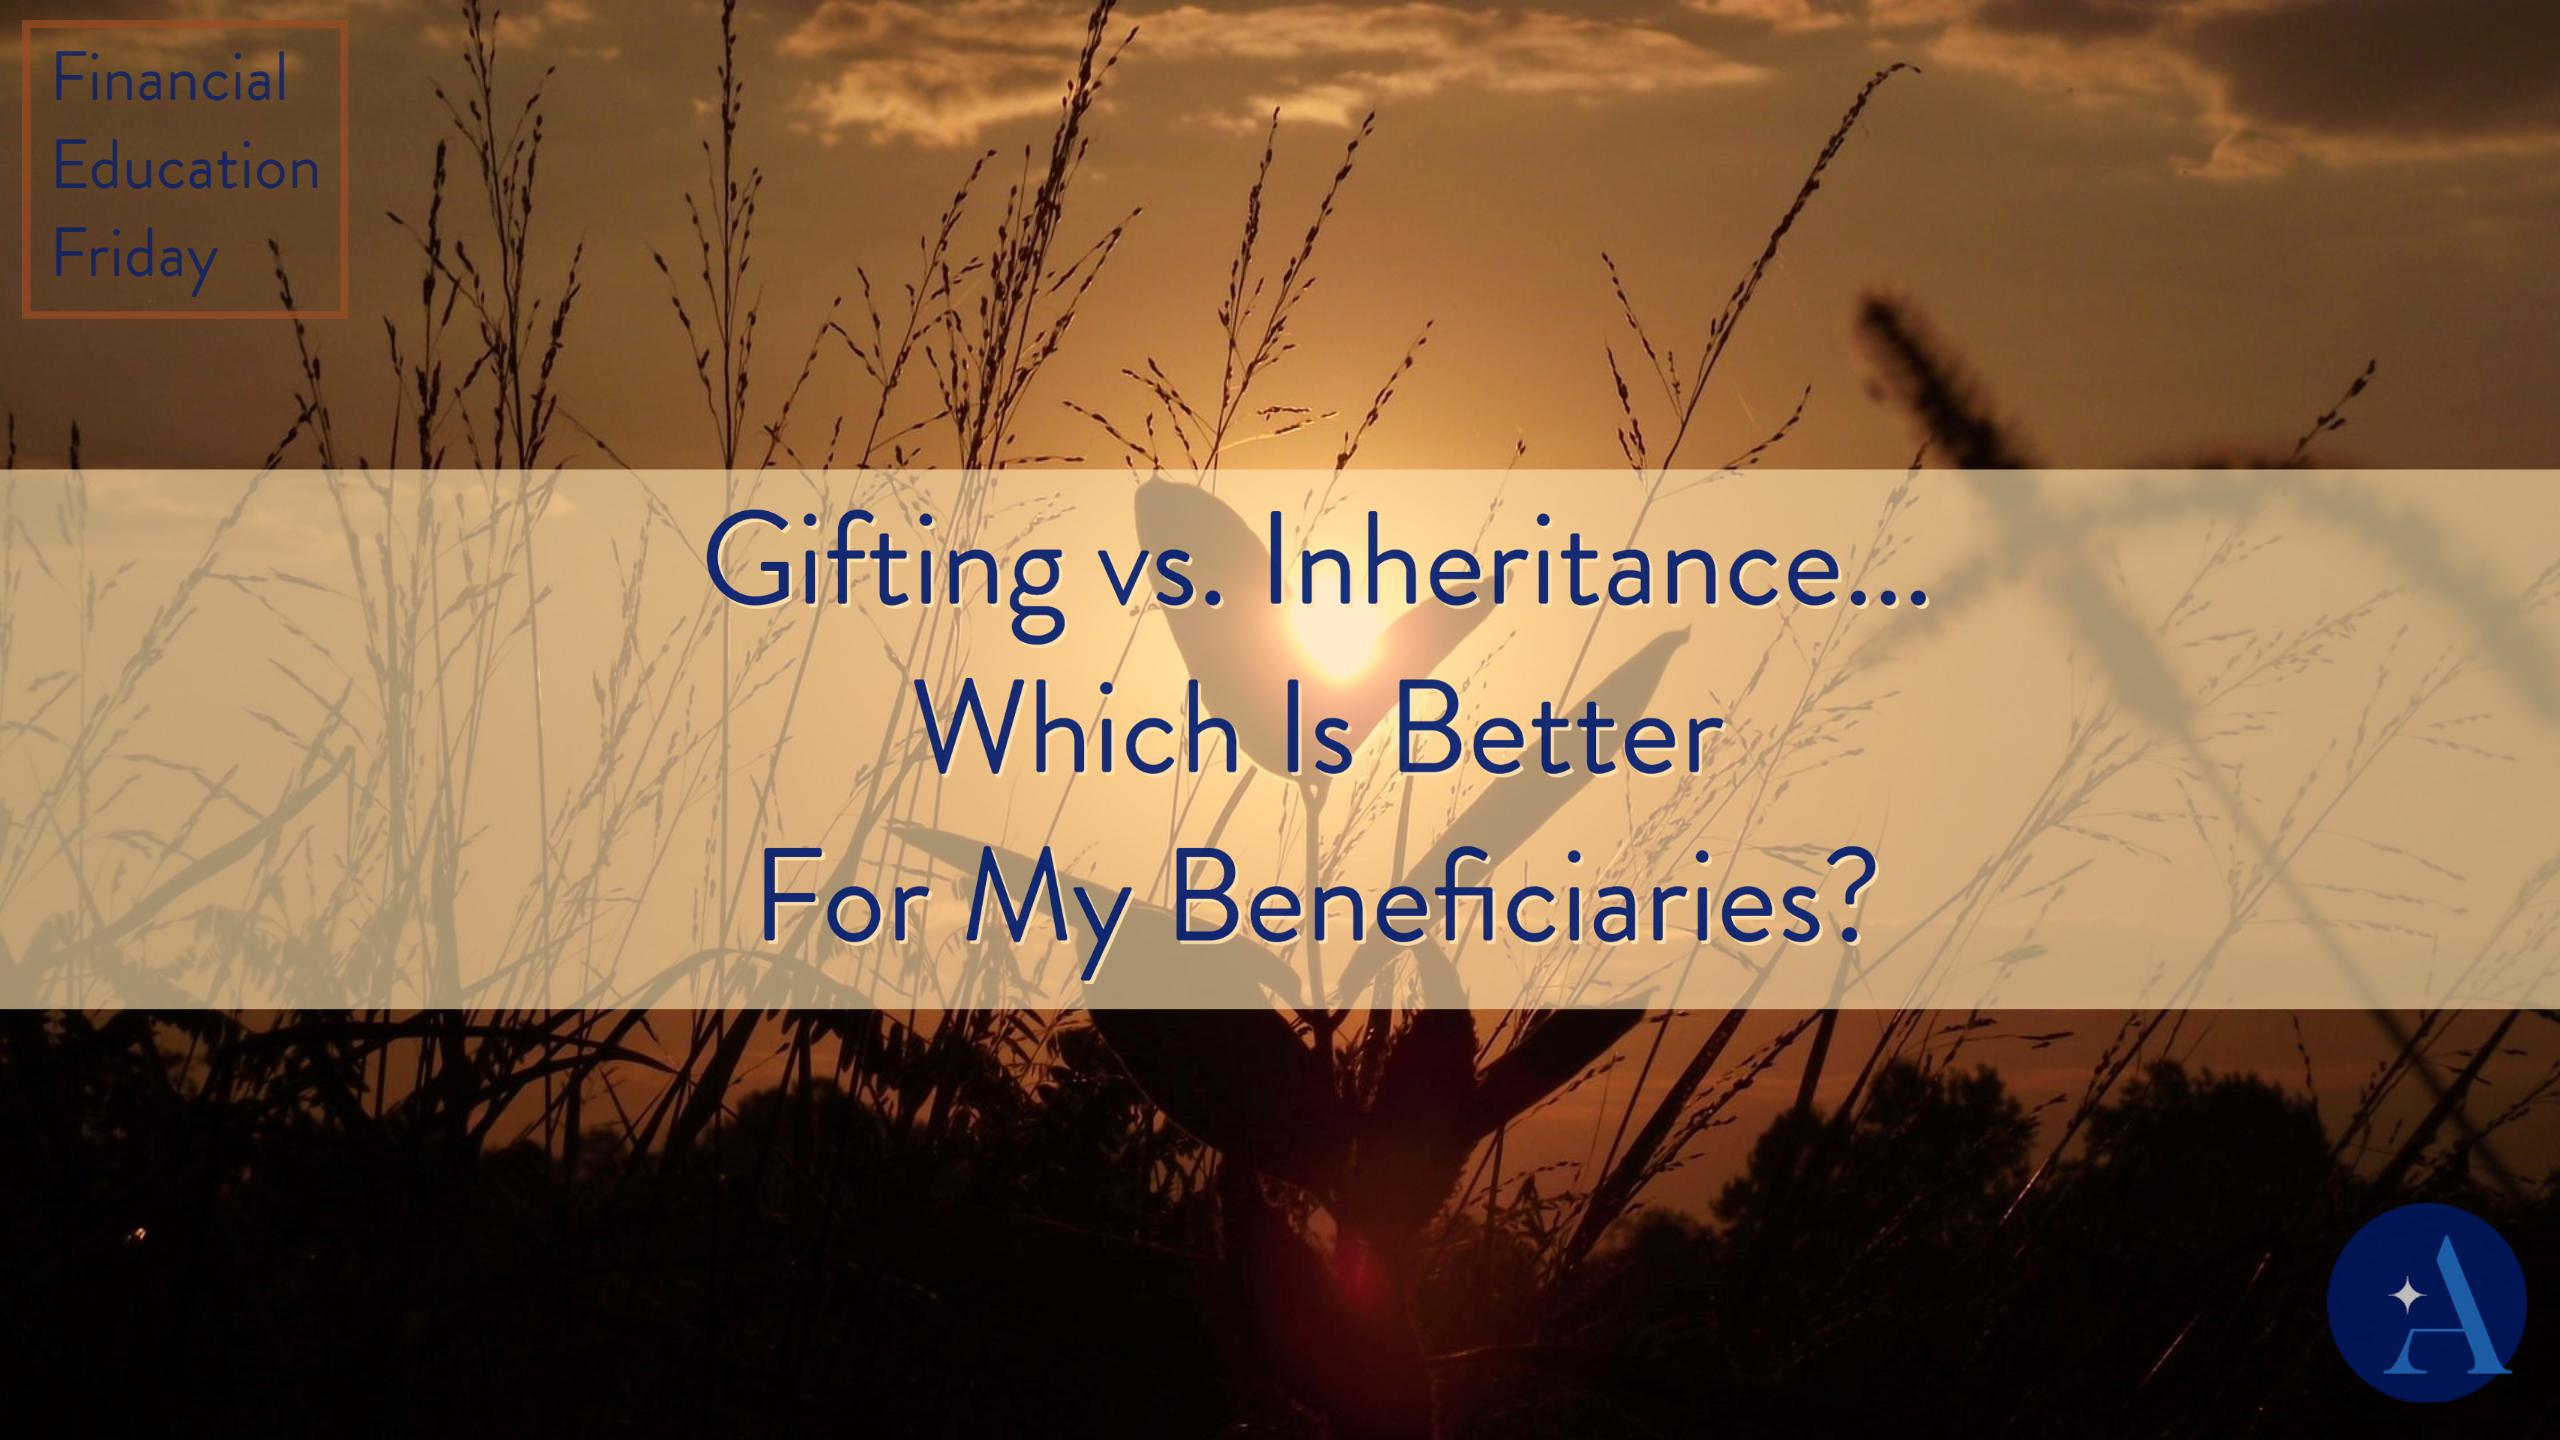 FinEdFriday: Gifting vs. Inheritance... Which Is Better For My Beneficiaries? Thumbnail